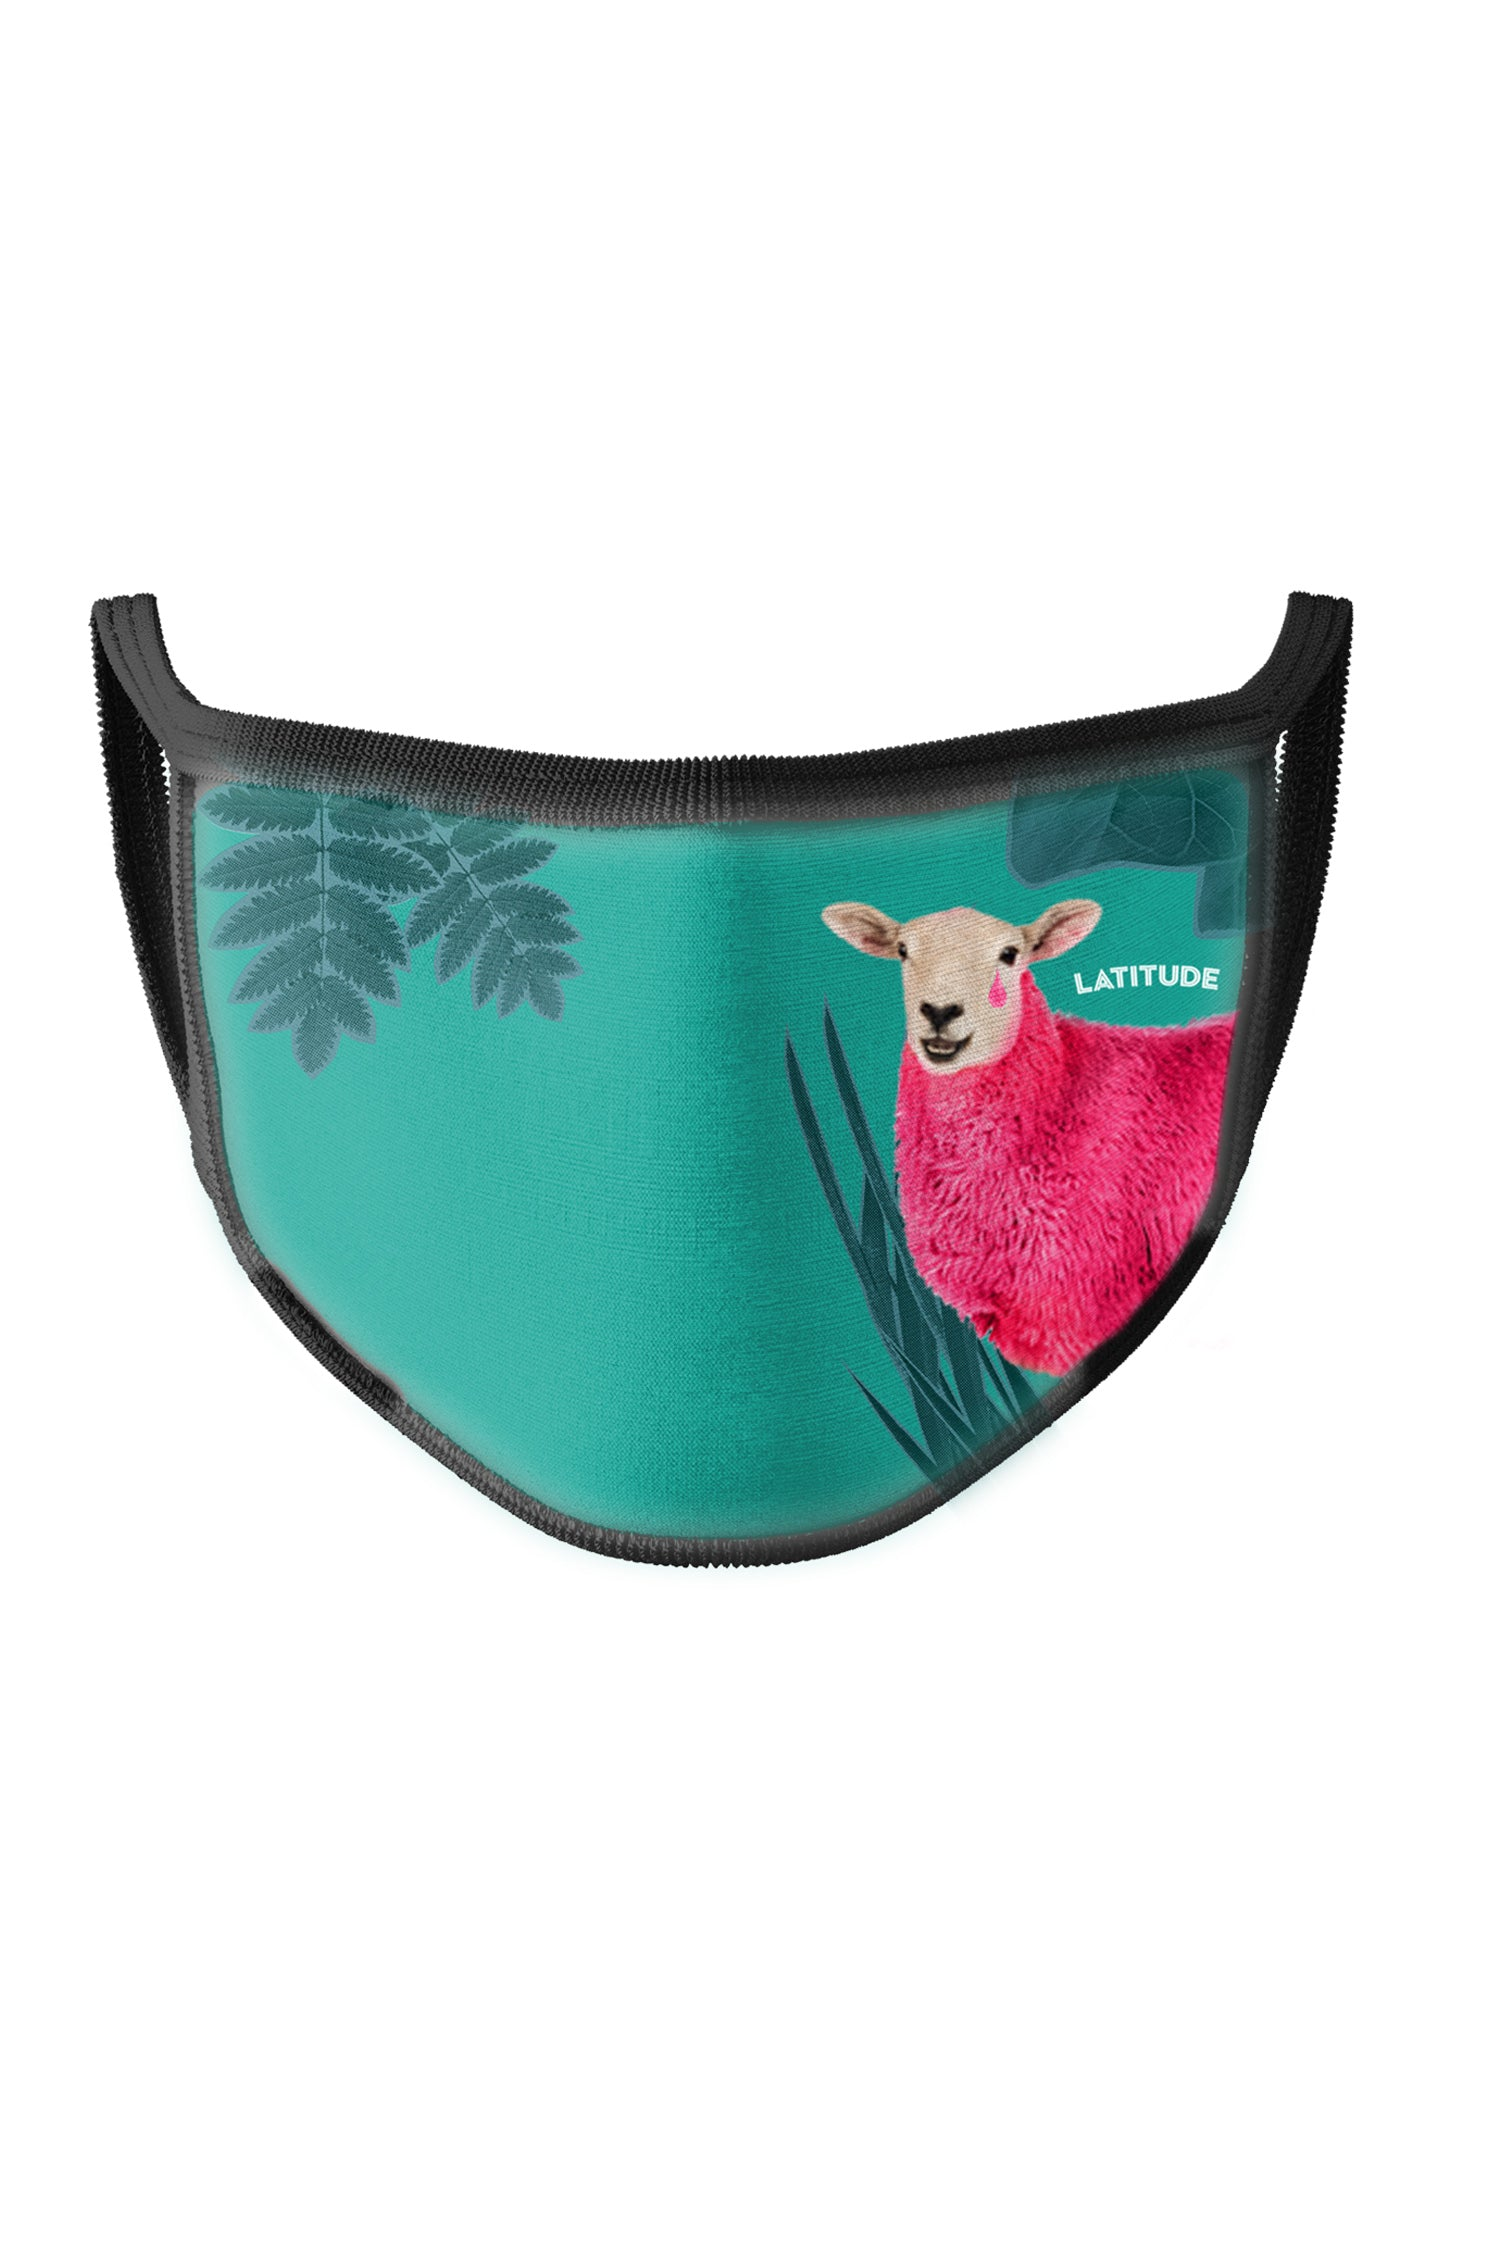 Sheep logo Mask